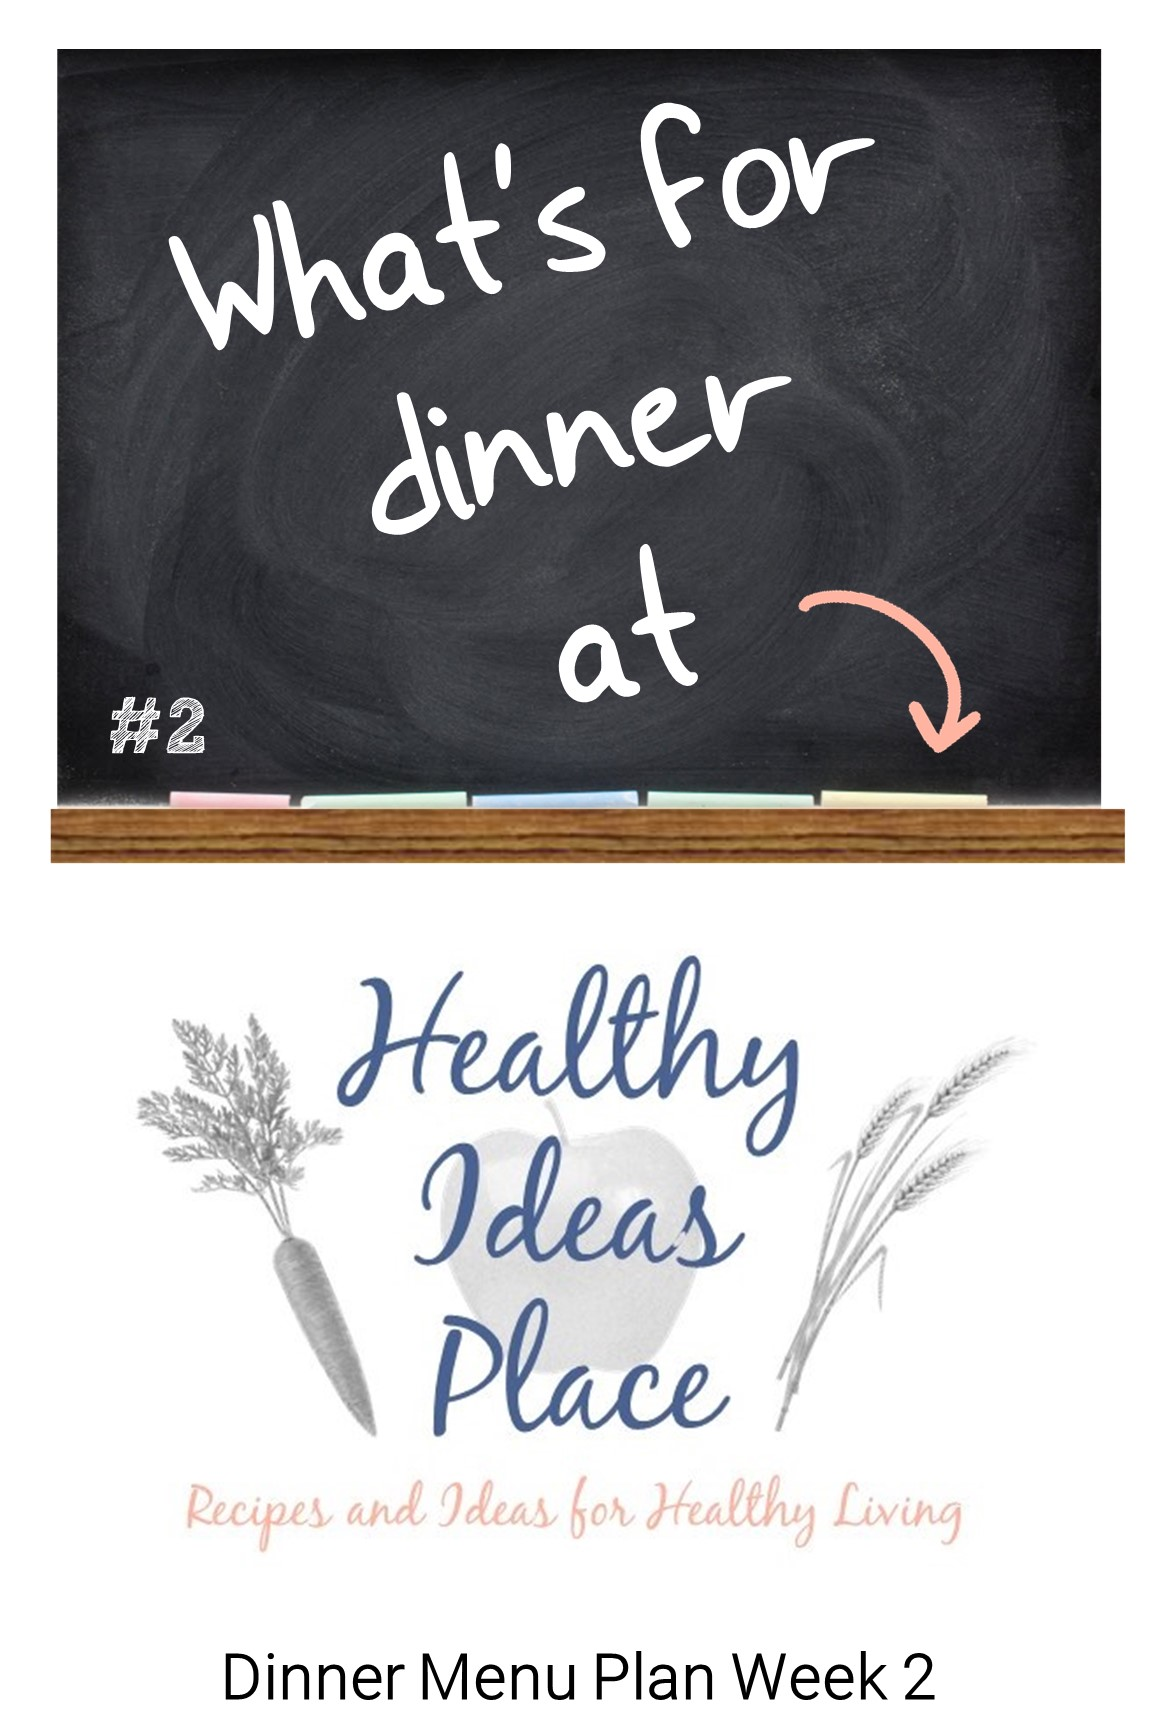 Do you struggle to figure out what's for dinner? See what's on the dinner menu for week 2 at Healthy Ideas Place for inspiration for your own menu!